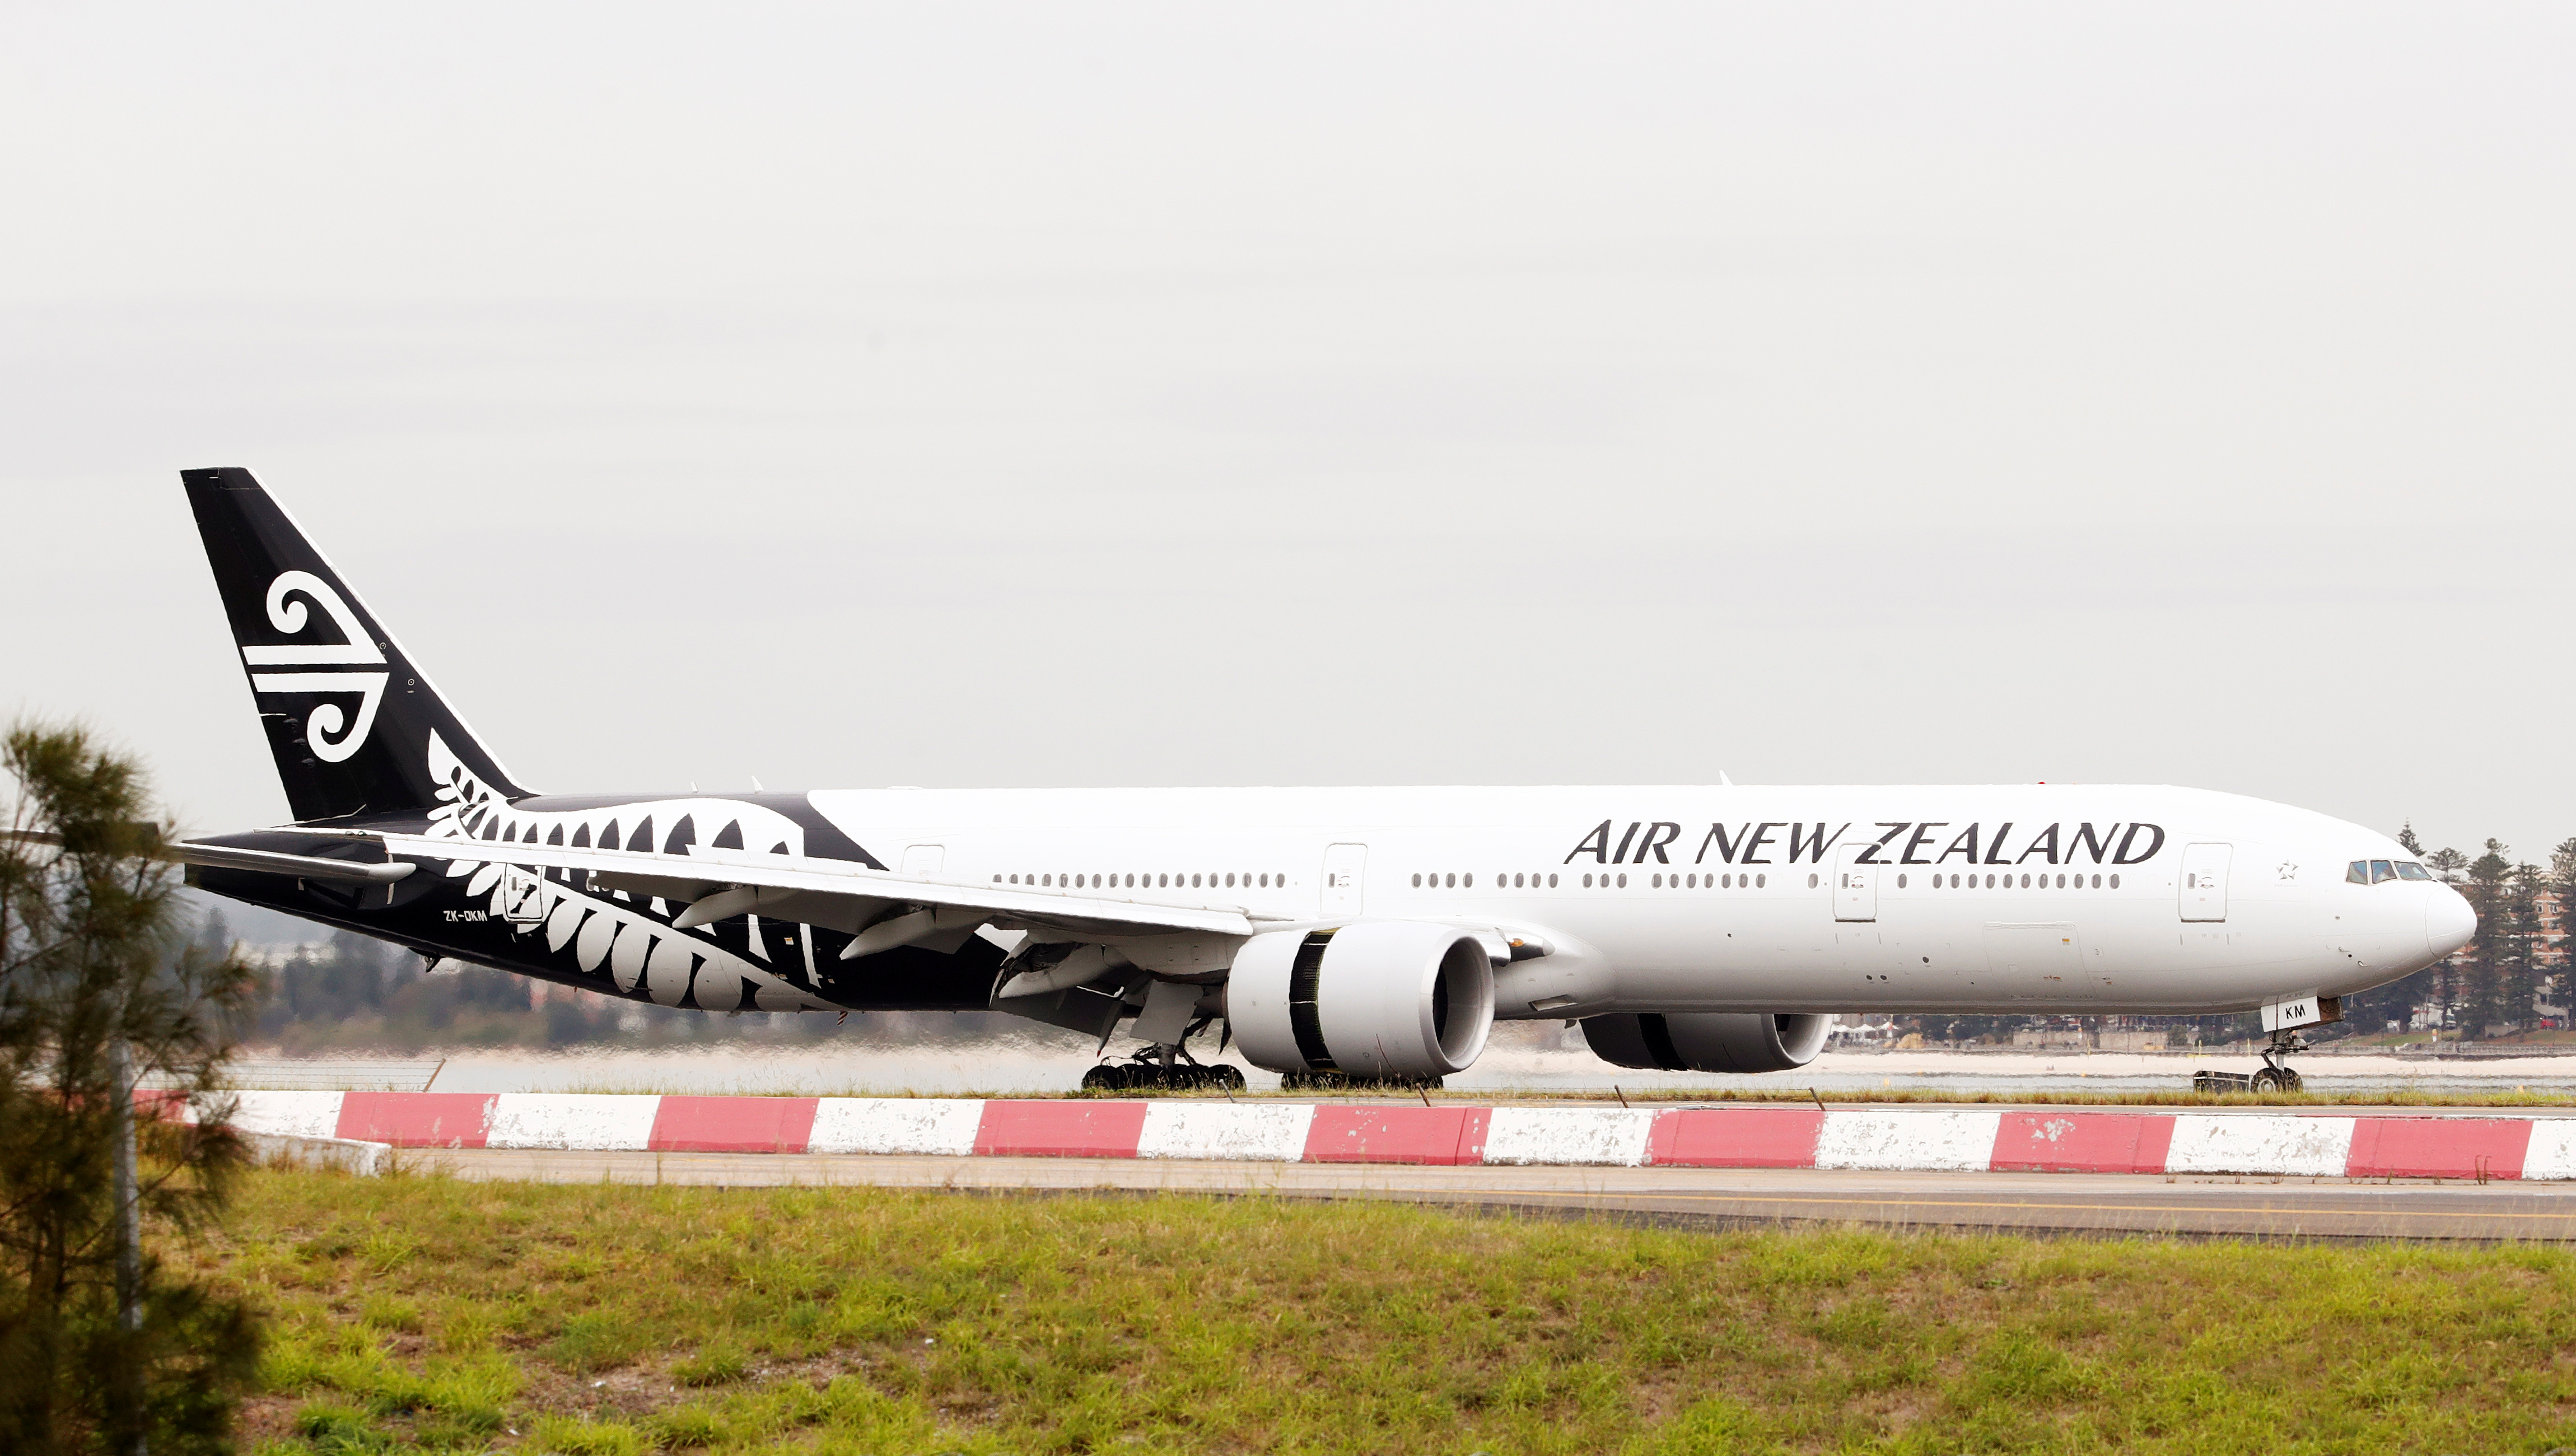 An Air New Zealand Boeing 777-300ER plane taxis after landing at Kingsford Smith International Airport in Sydney, Australia, February 22, 2018. REUTERS/Daniel Munoz